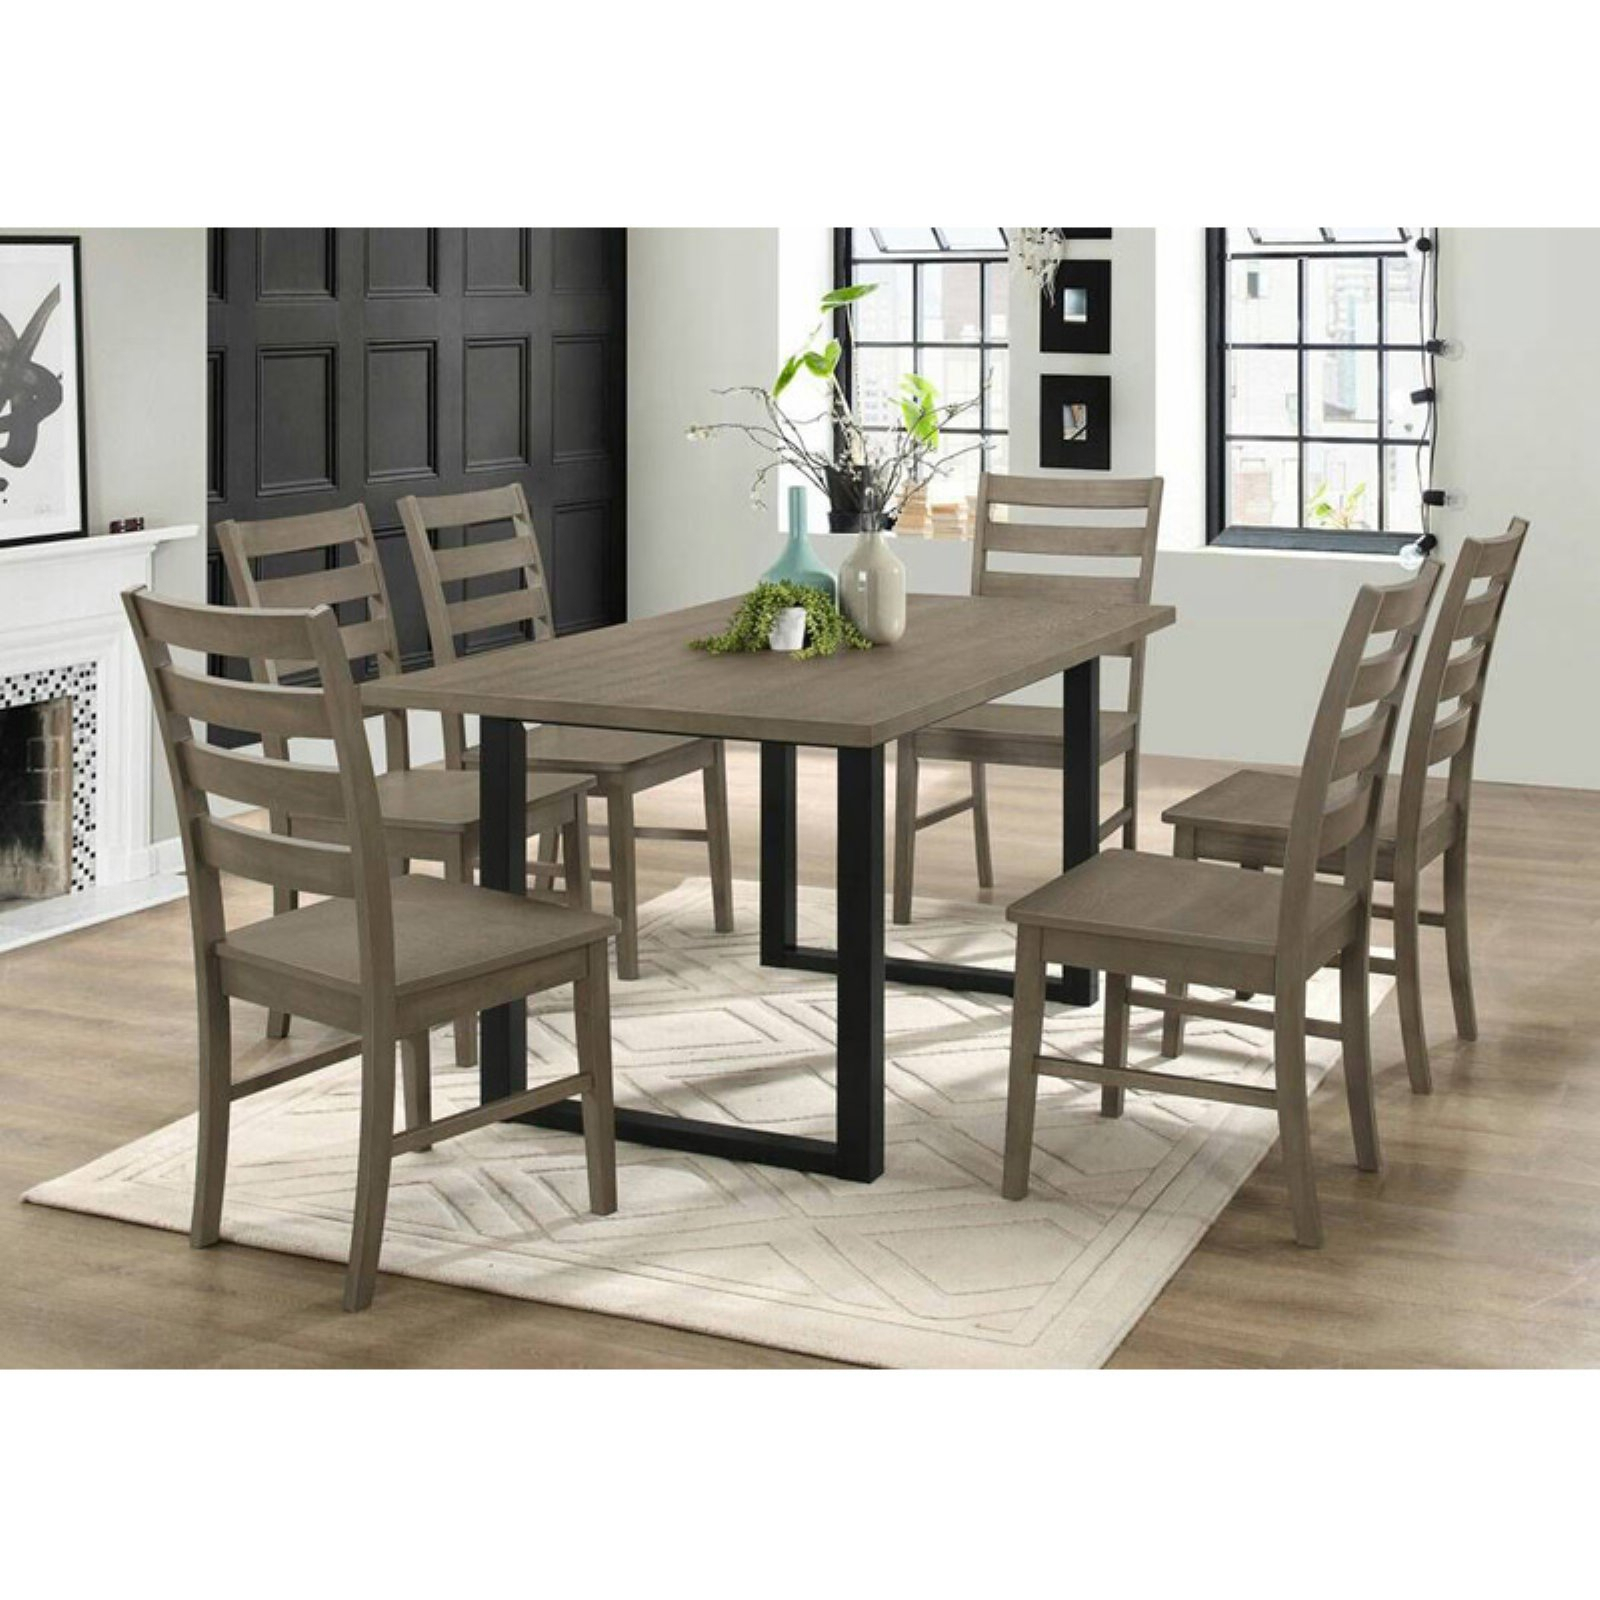 Walker Edison Modern 7 Piece Dining Table Set Grey In 2019 For 2017 Kieffer 5 Piece Dining Sets (View 8 of 20)